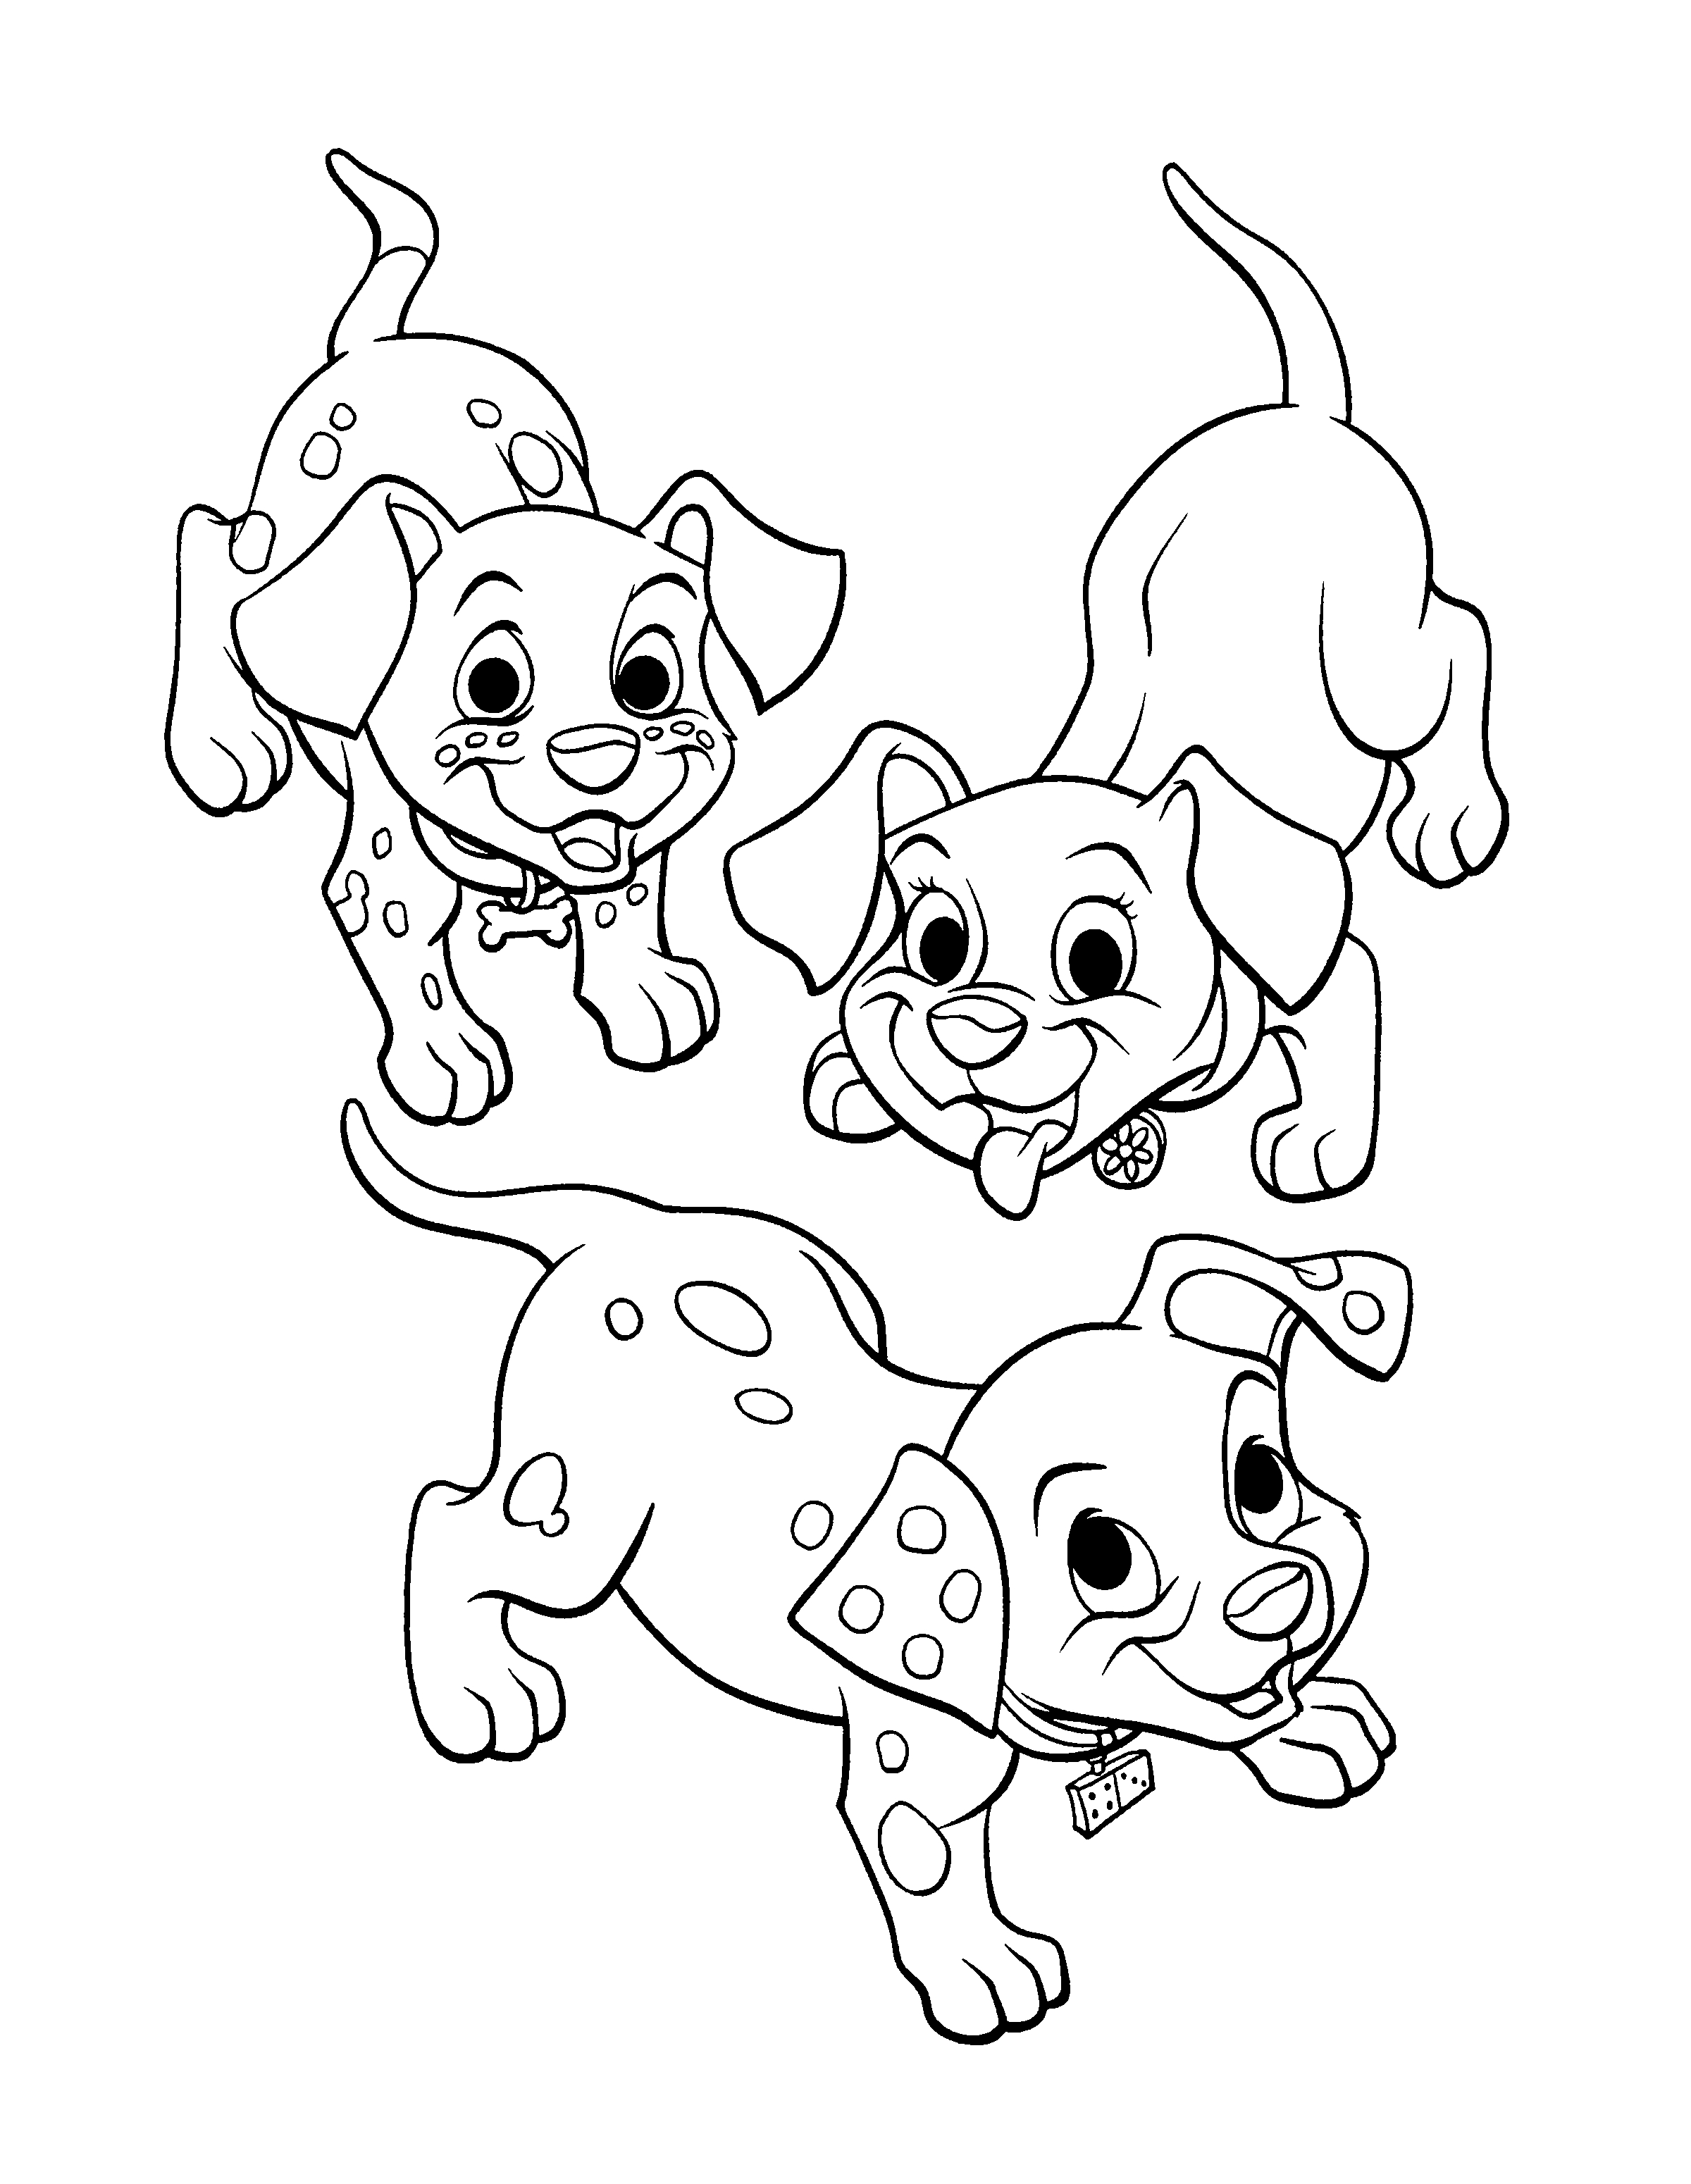 101 Dalmations Puppy Coloring Pages